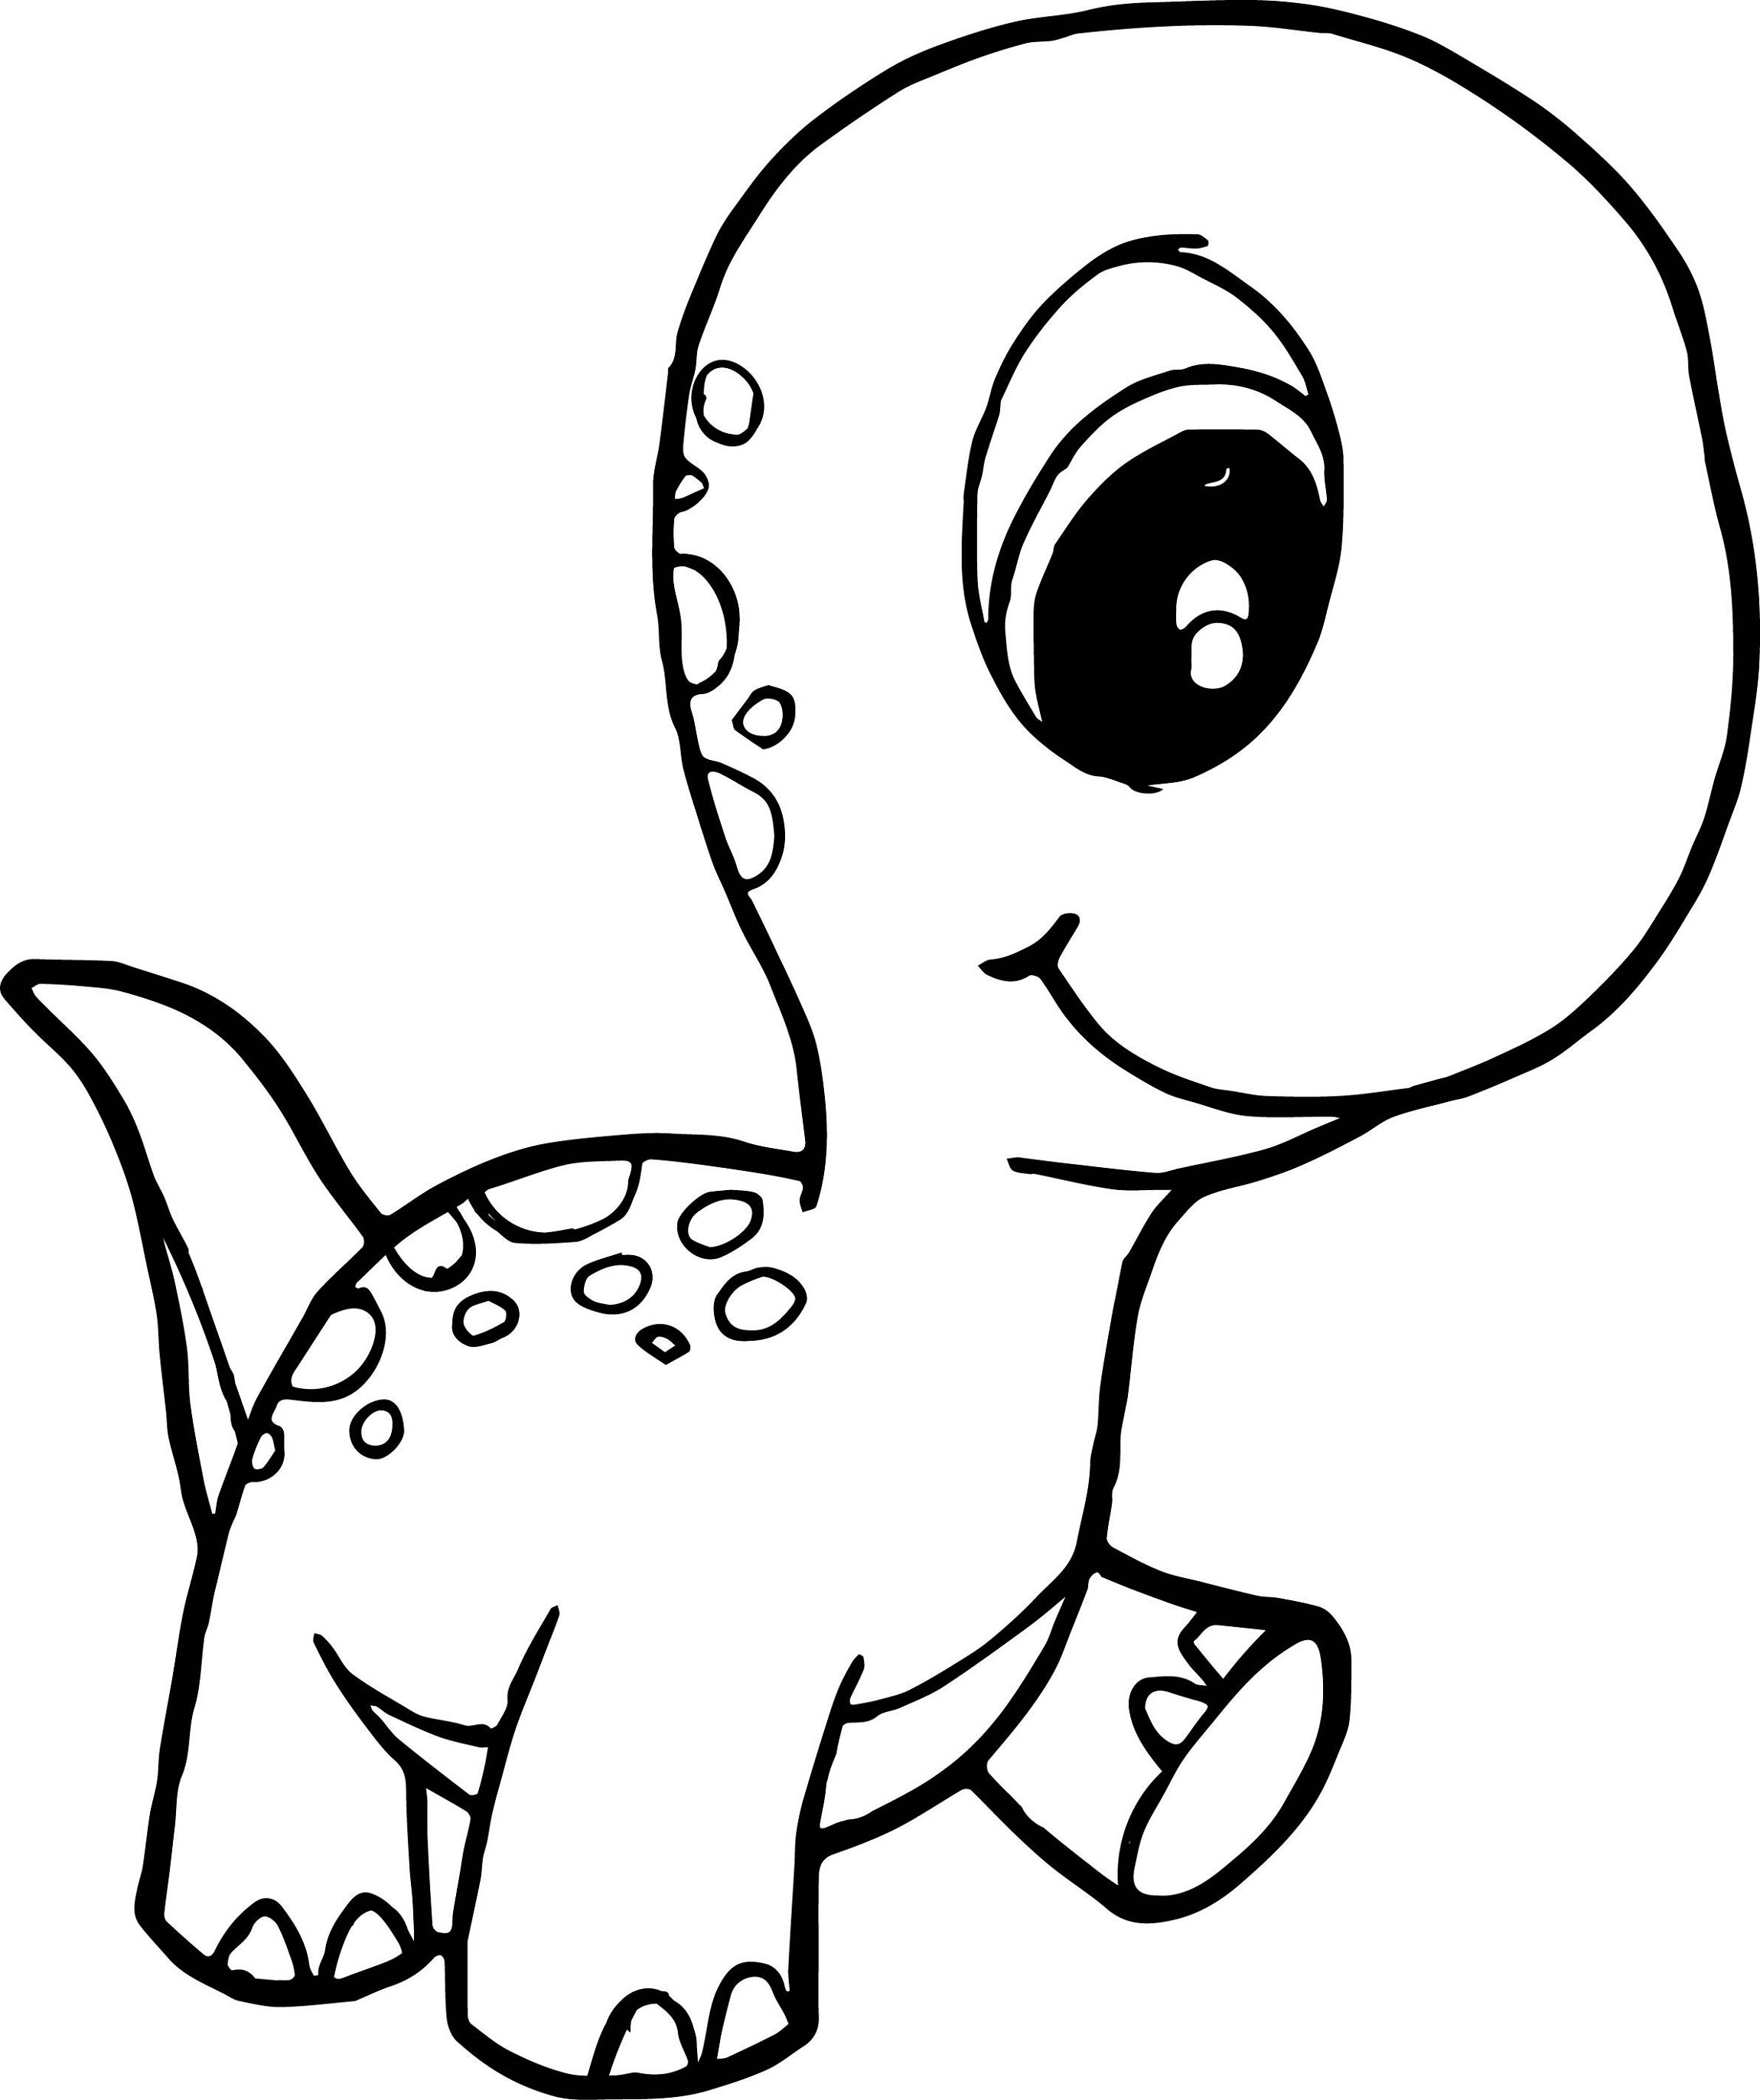 baby dinosaur coloring pages for preschoolers coloring pages for kids dinosaur coloring. Black Bedroom Furniture Sets. Home Design Ideas